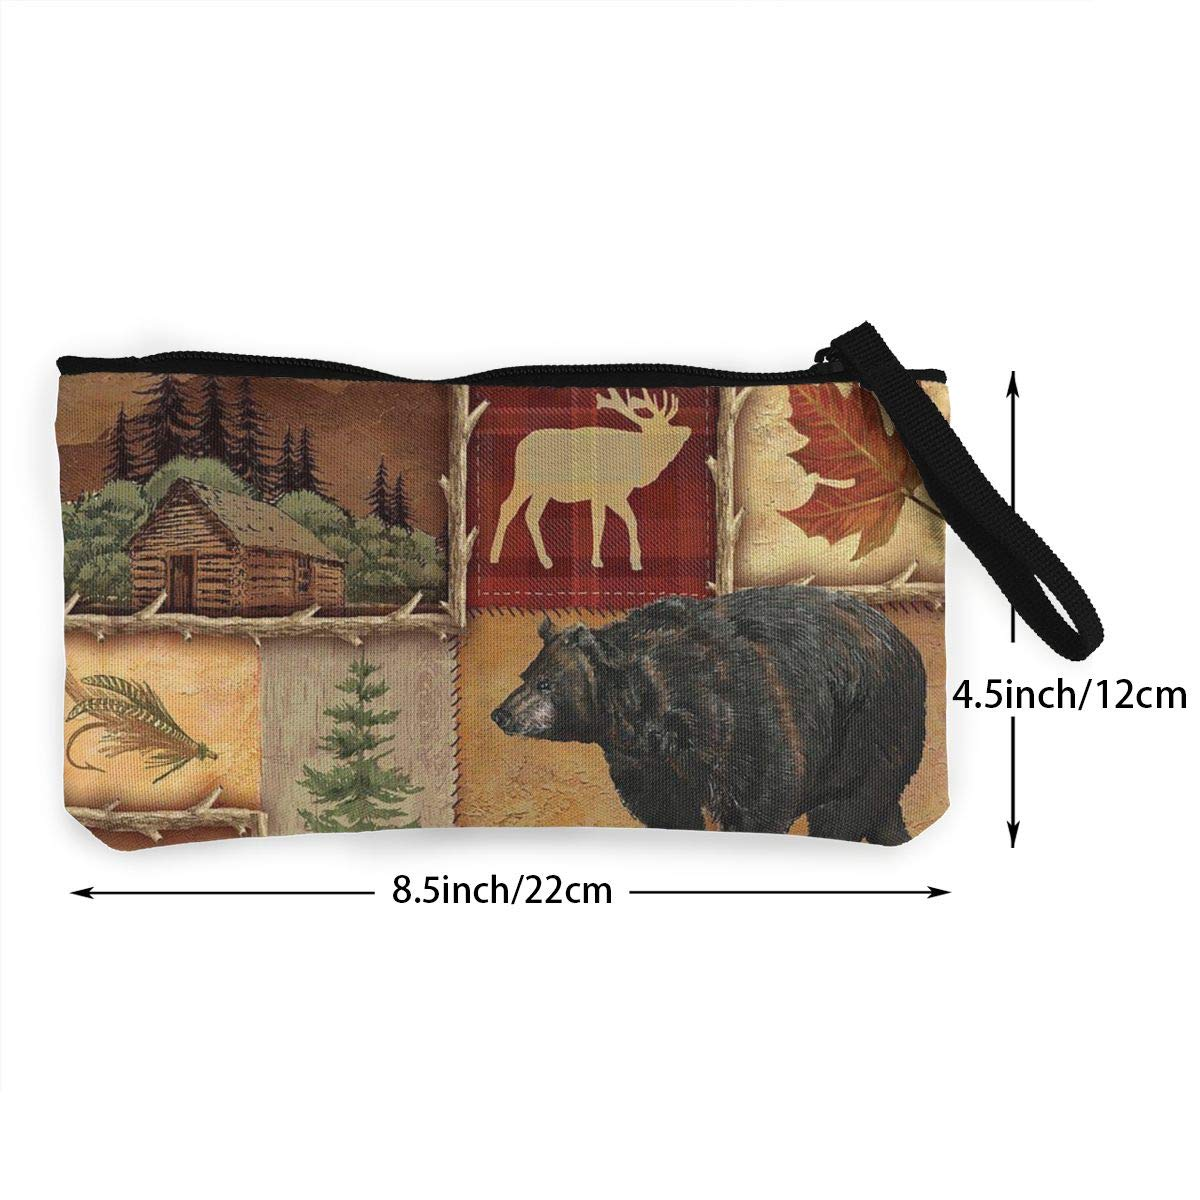 Make Up Bag,Cellphone Bag With Handle Rustic Lodge Bear Moose Deer Zipper Canvas Coin Purse Wallet